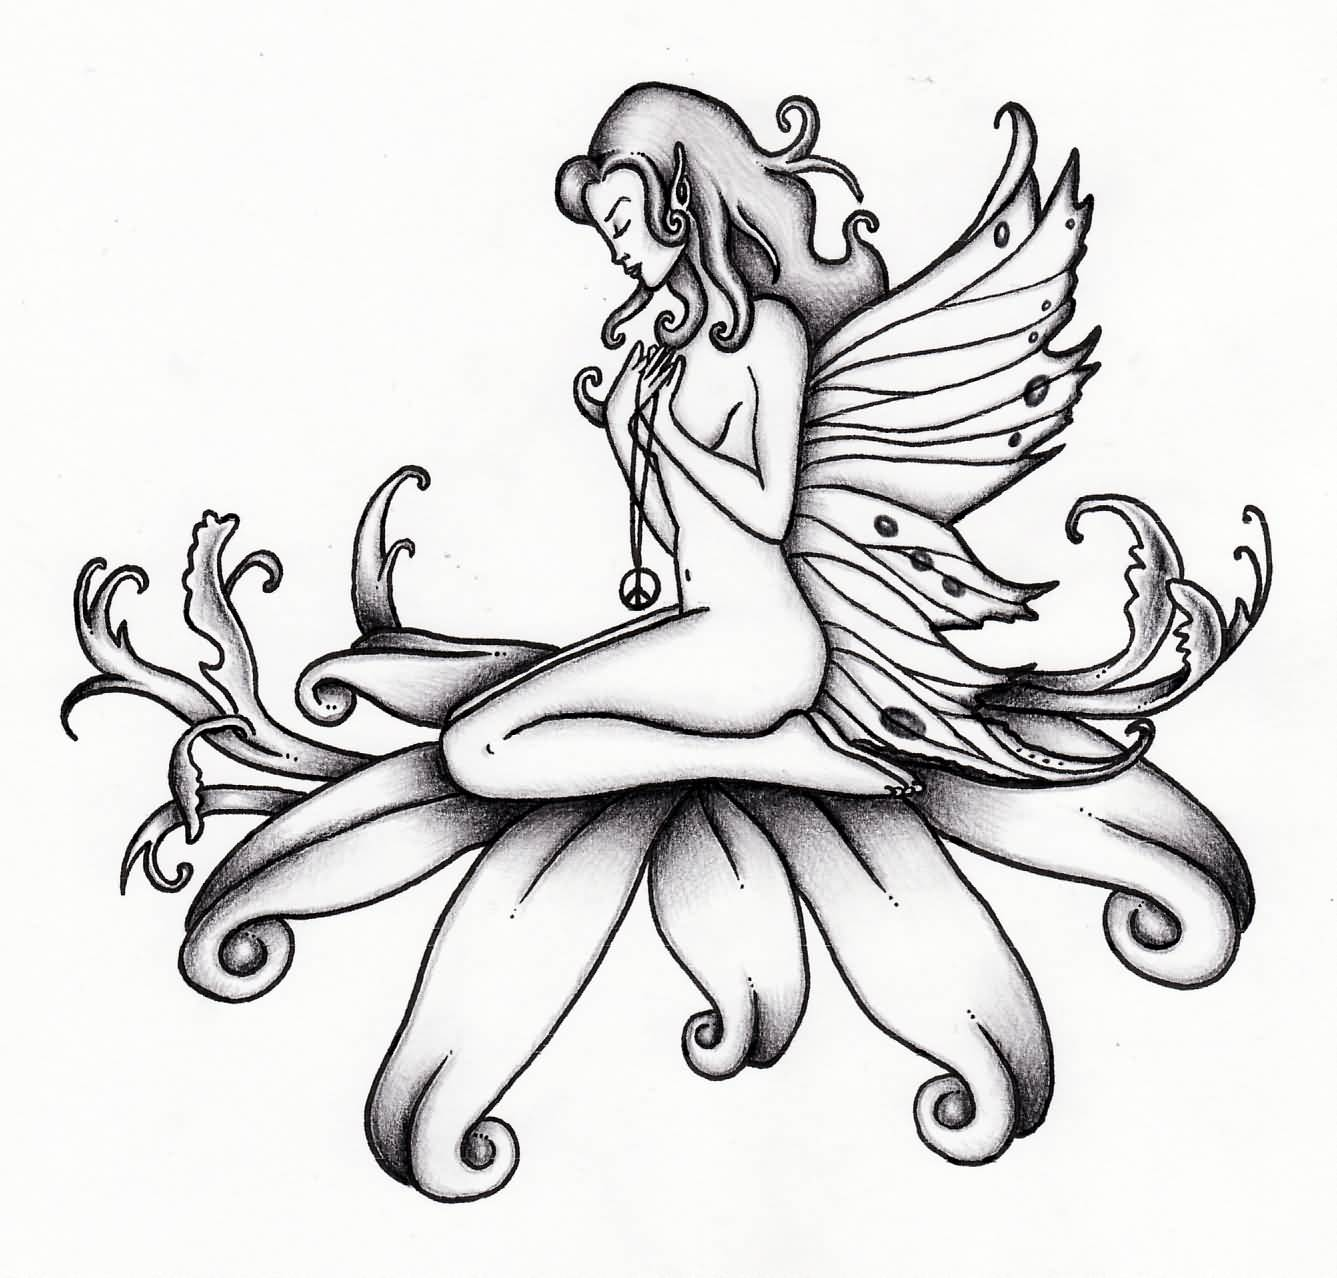 Fairies tattoos designs - Black Ink Flying Fairy On Flower Tattoo Design